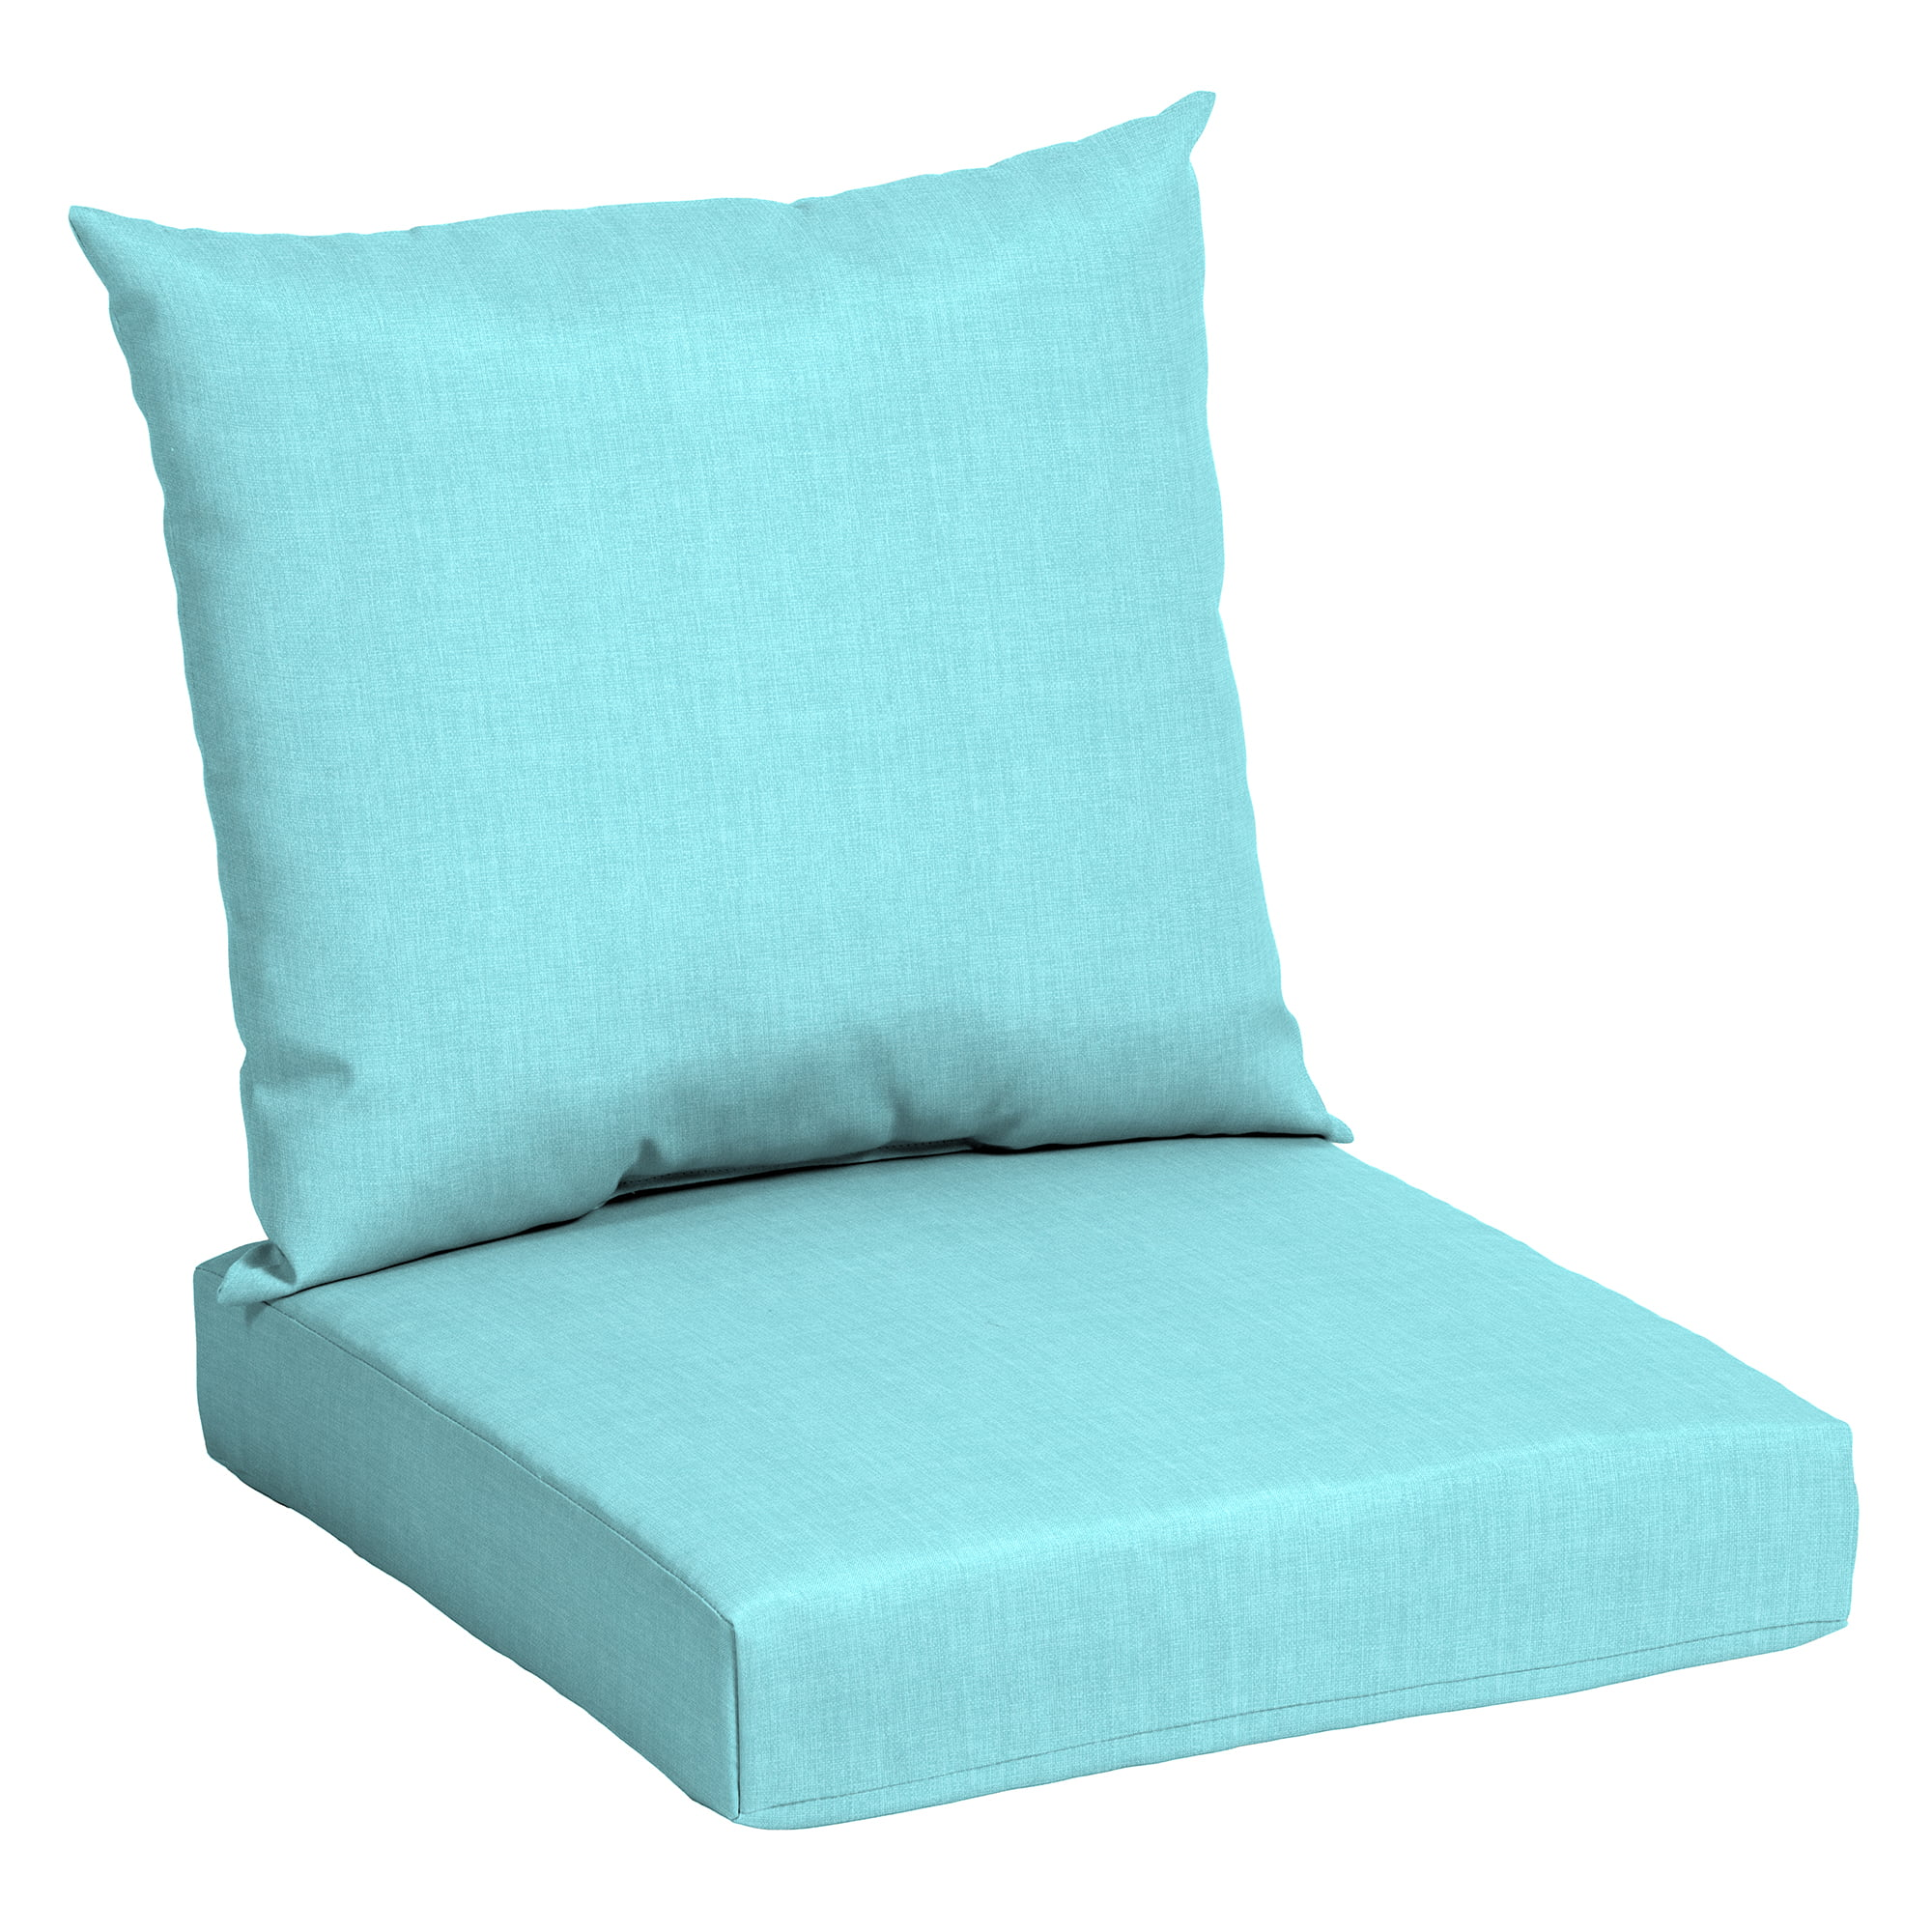 mainstays teal 45 x 22 75 in outdoor patio deep seat cushion set